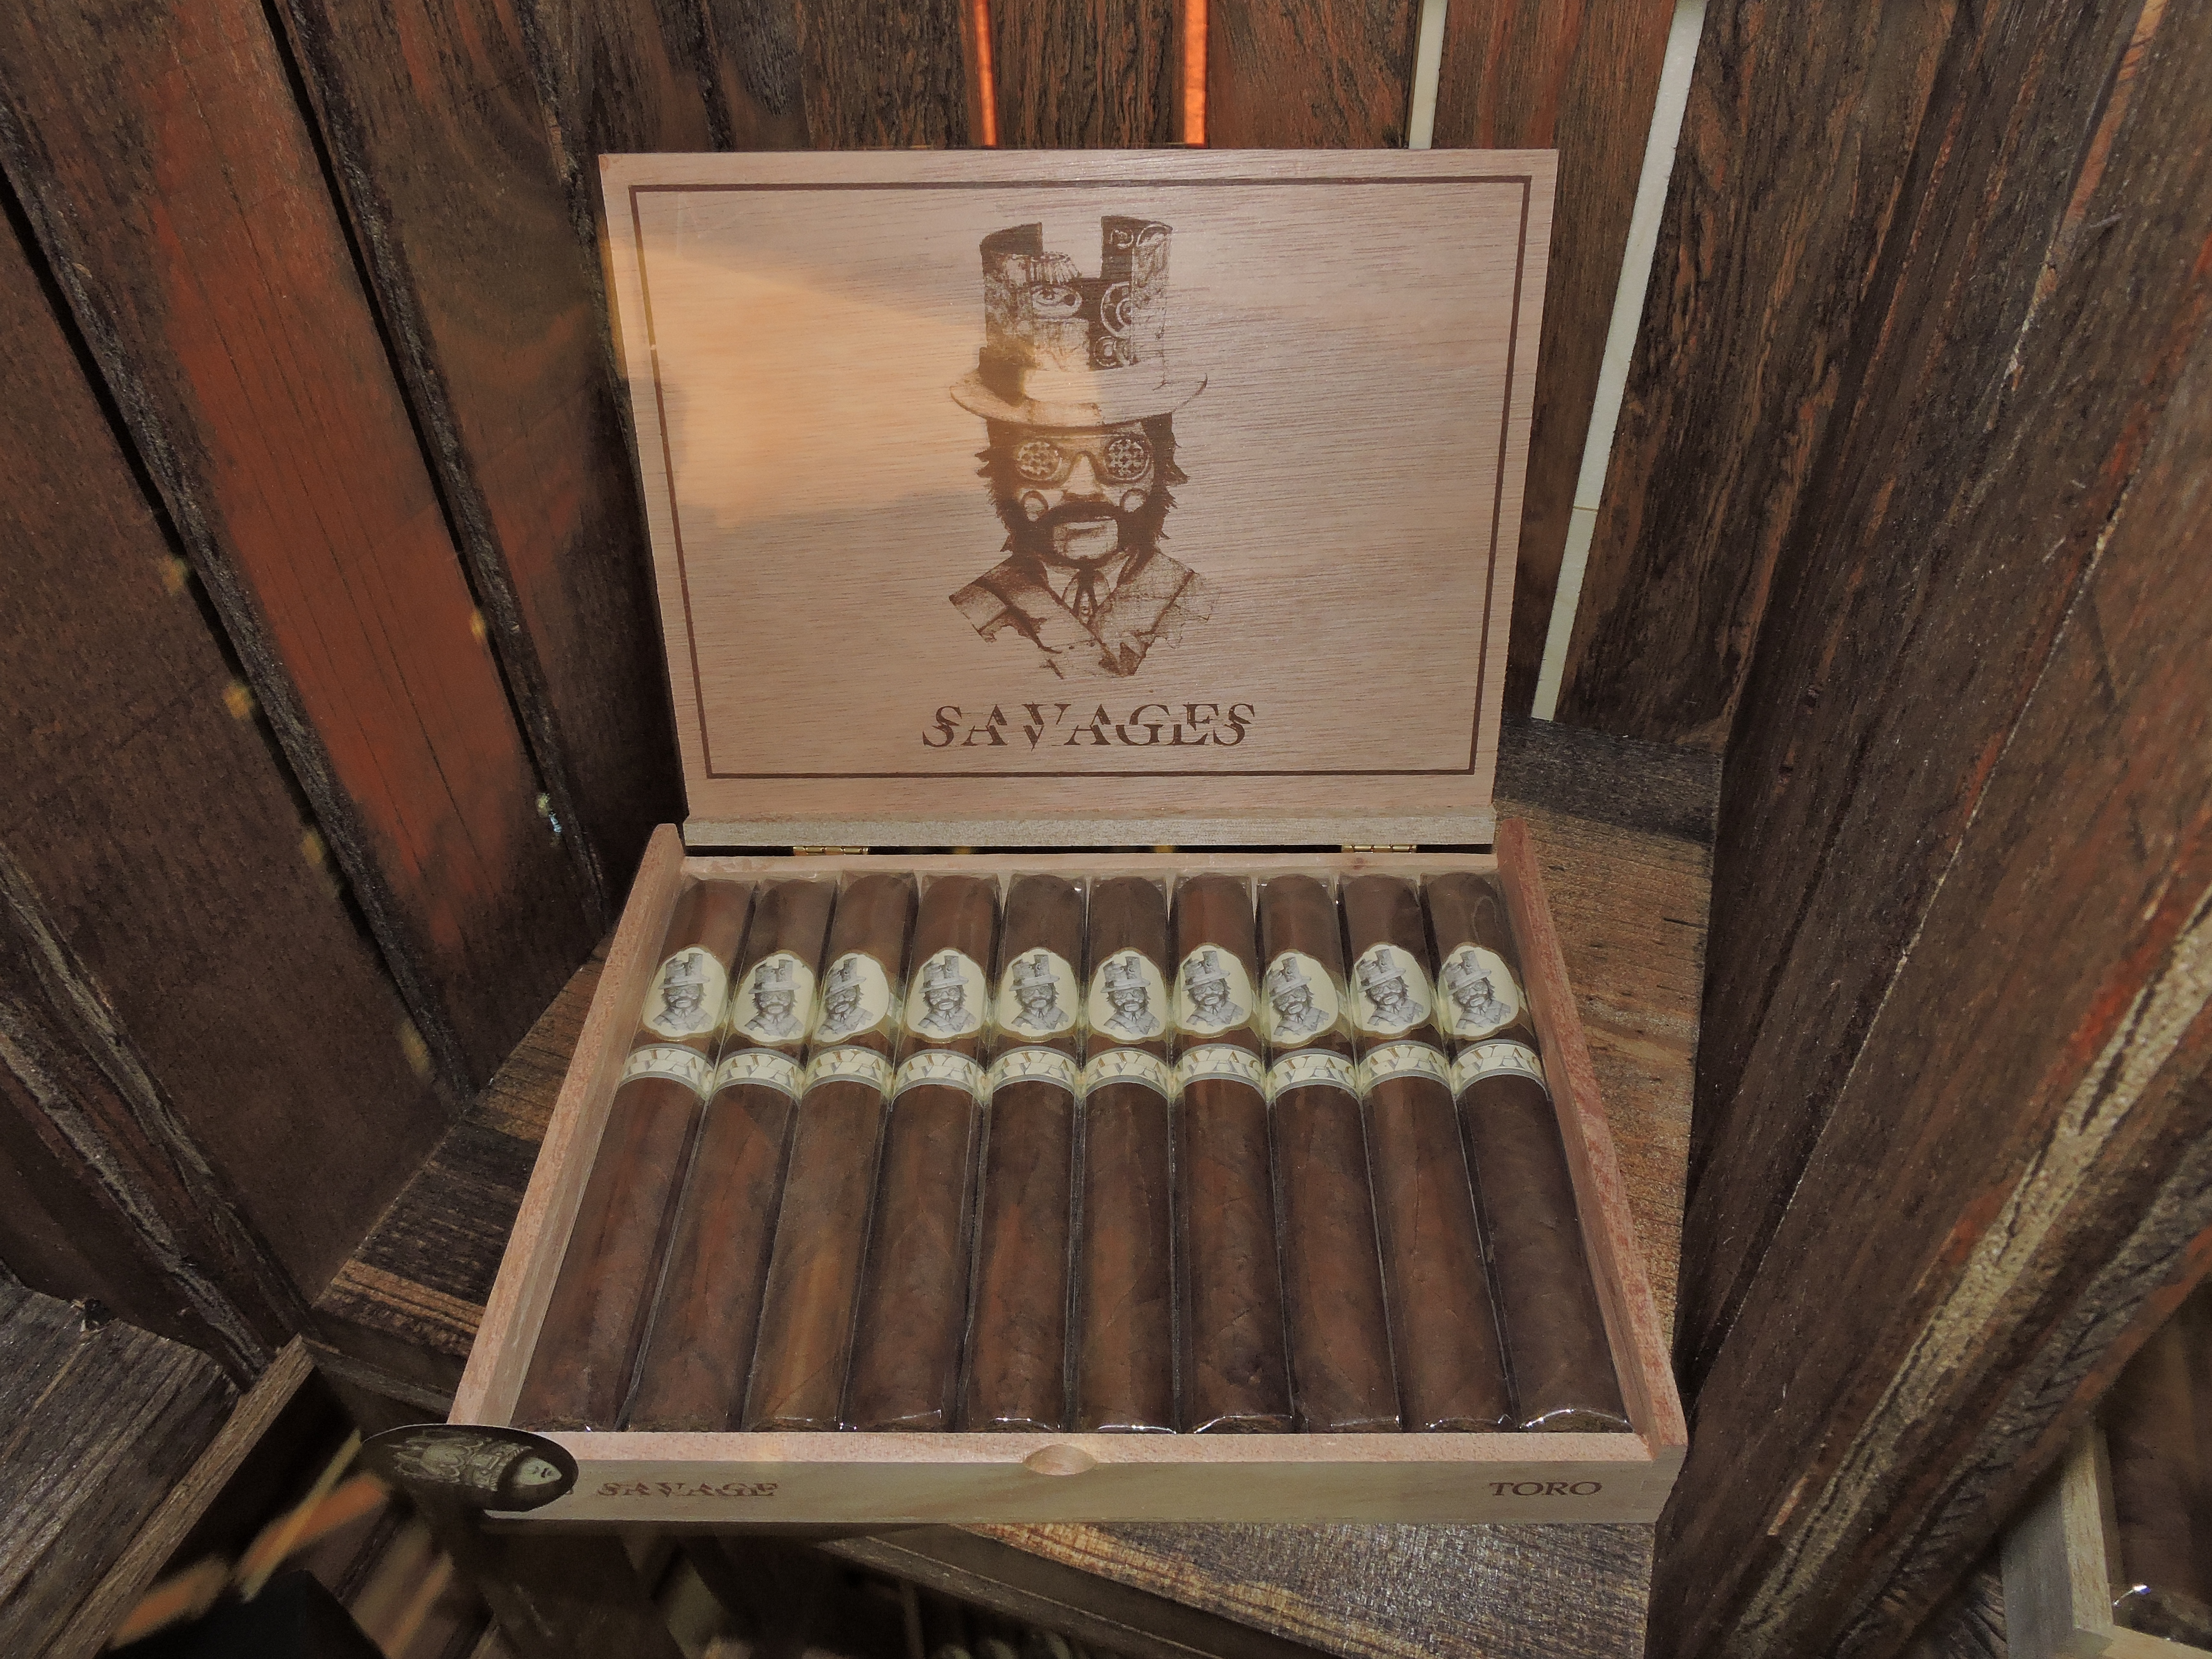 Cigar News: Caldwell Cigar Company Unveils Savages at 2016 IPCPR